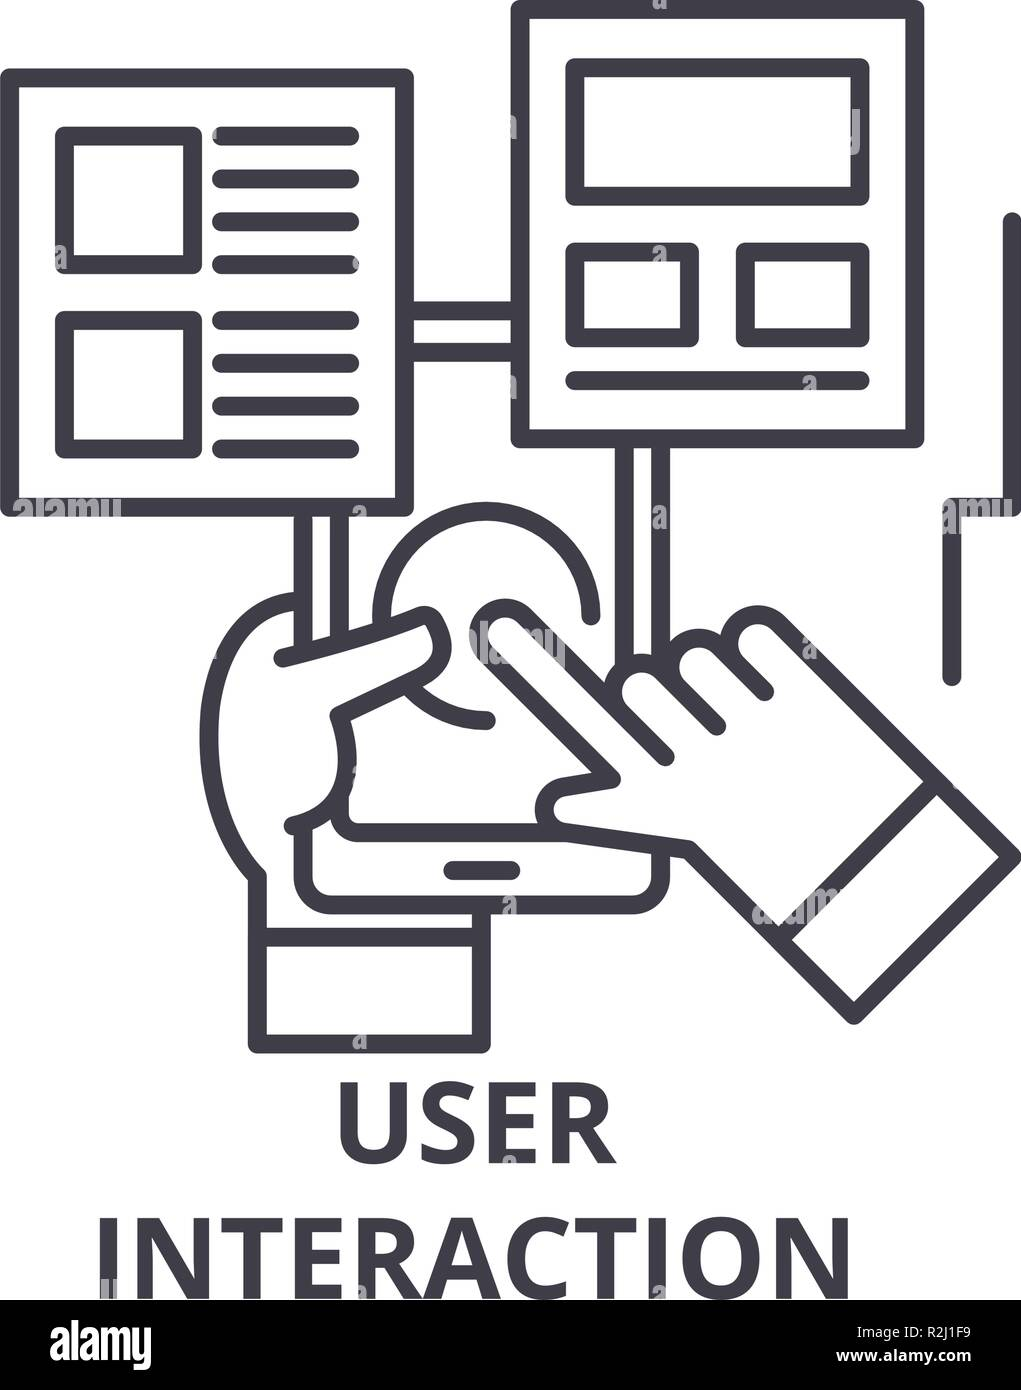 User interaction line icon concept. User interaction vector linear illustration, symbol, sign - Stock Image